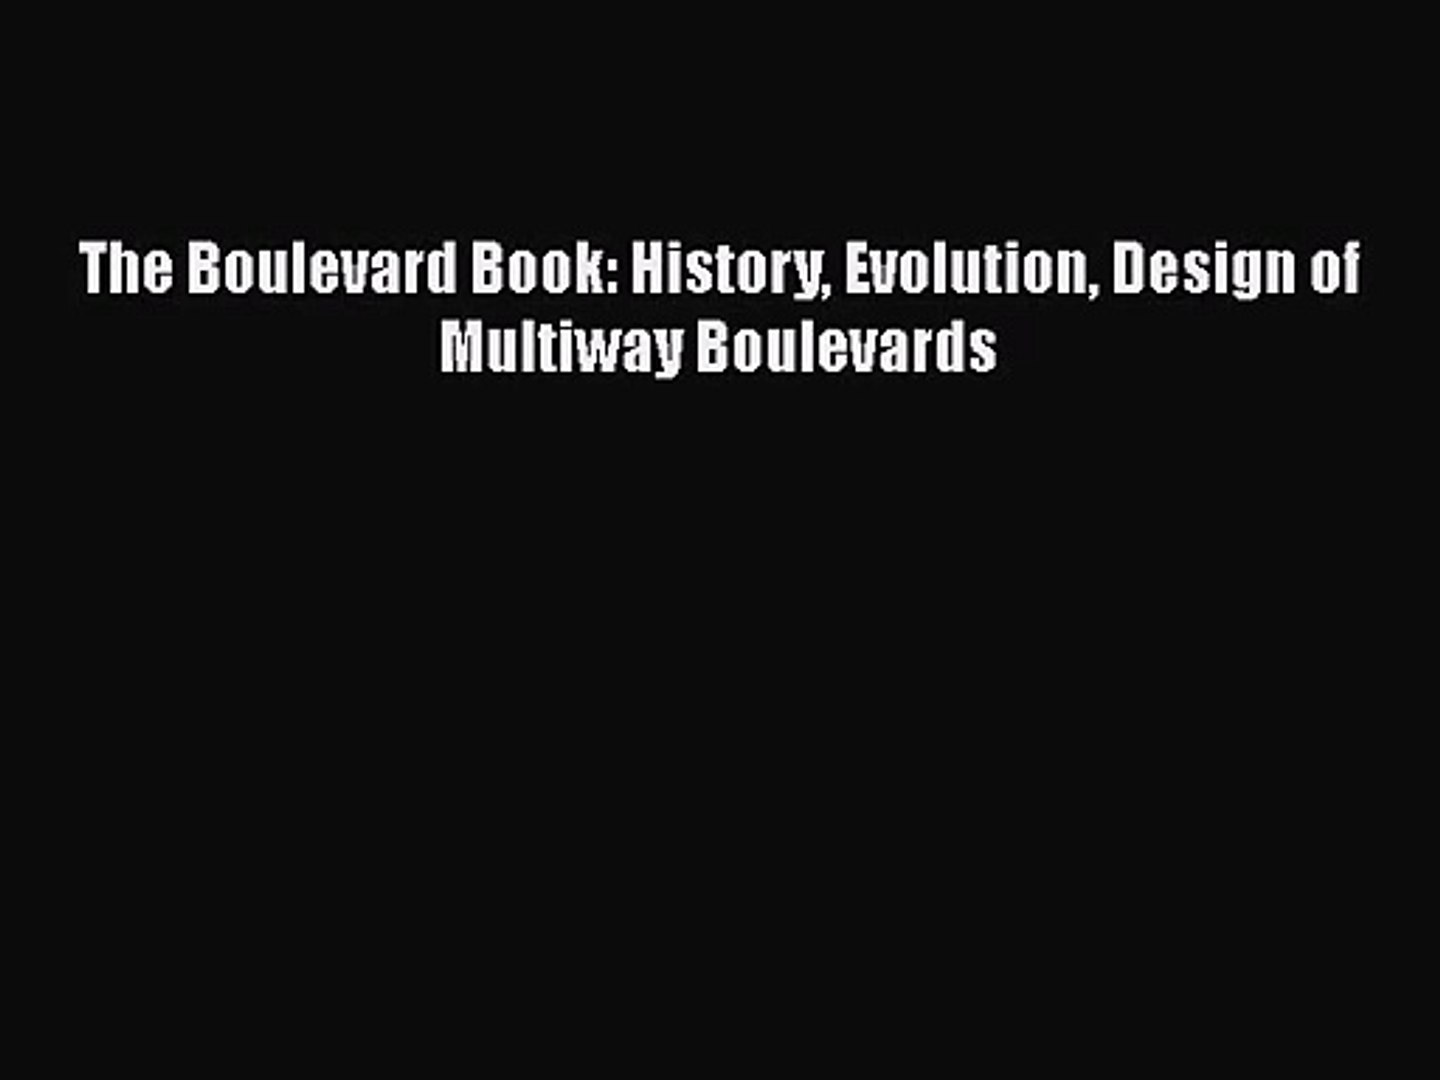 The Boulevard Book: History Evolution Design of Multiway Boulevards [PDF Download] The Boulevard